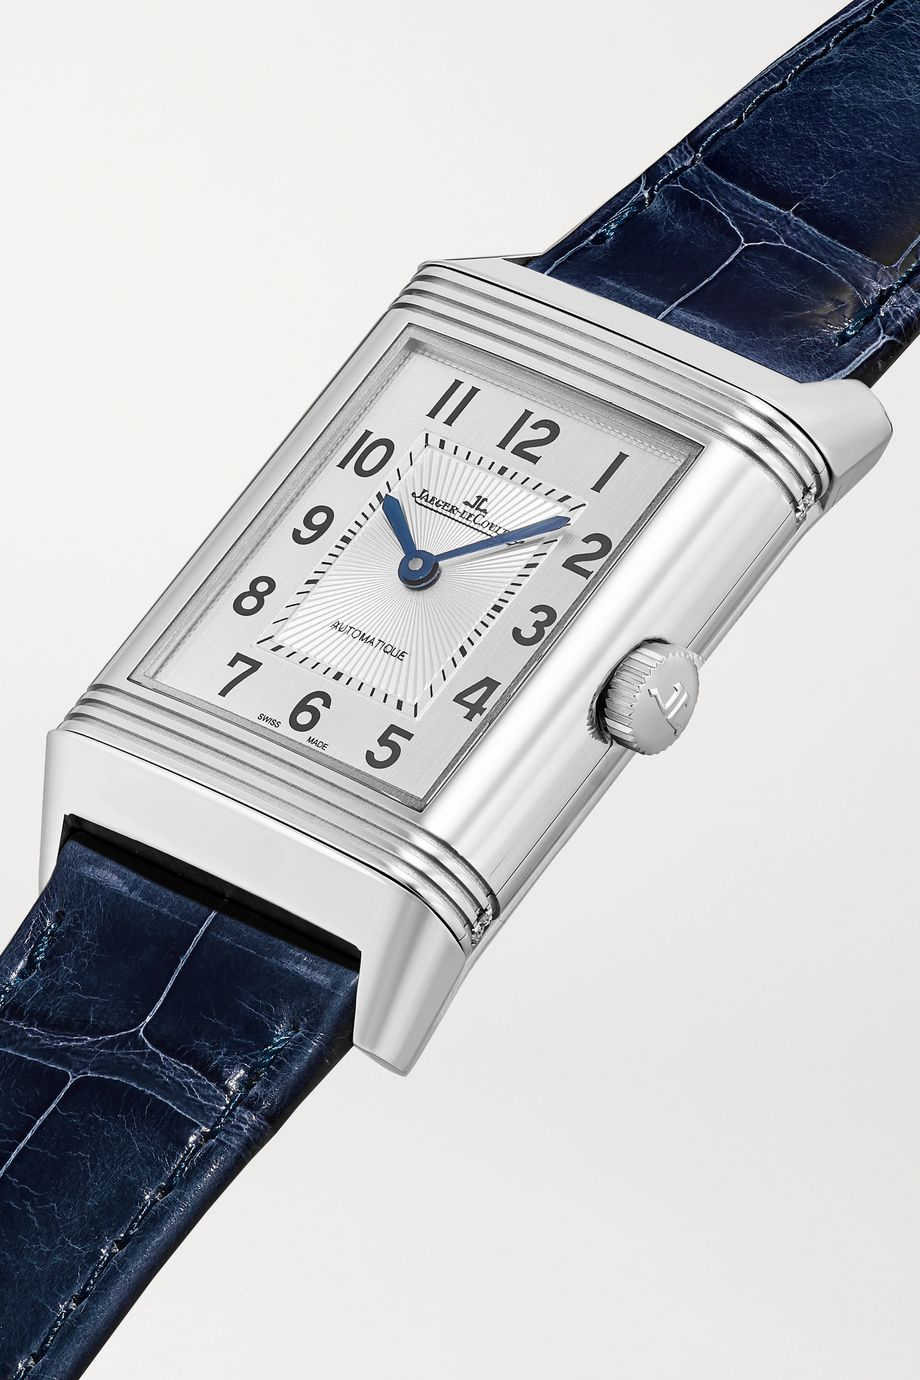 Jaeger-LeCoultre Reverso Classic Duetto 24.4mm medium stainless steel, alligator and diamond watch